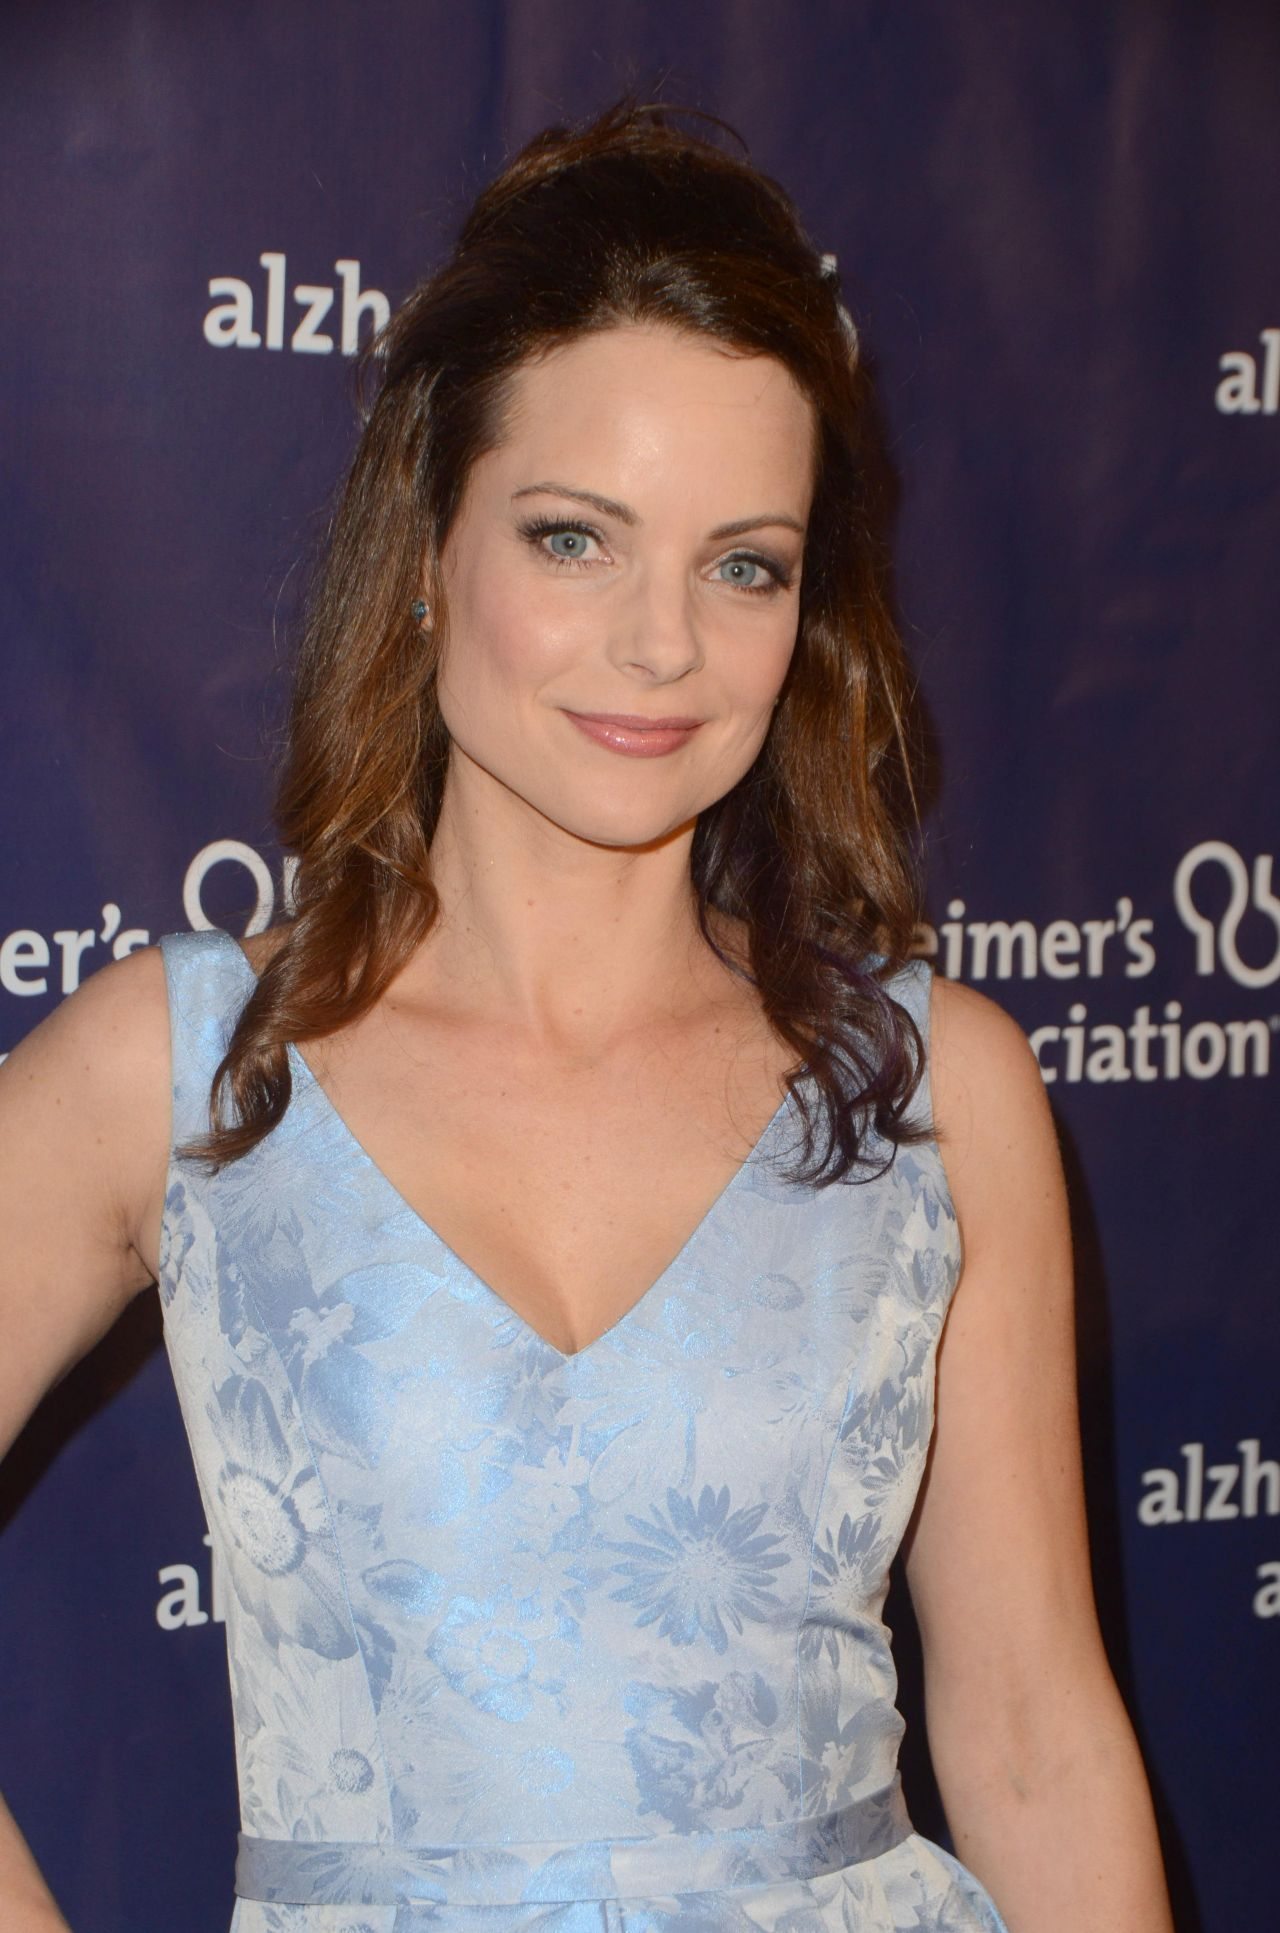 Agree, the Kimberly williams paisley panties have hit